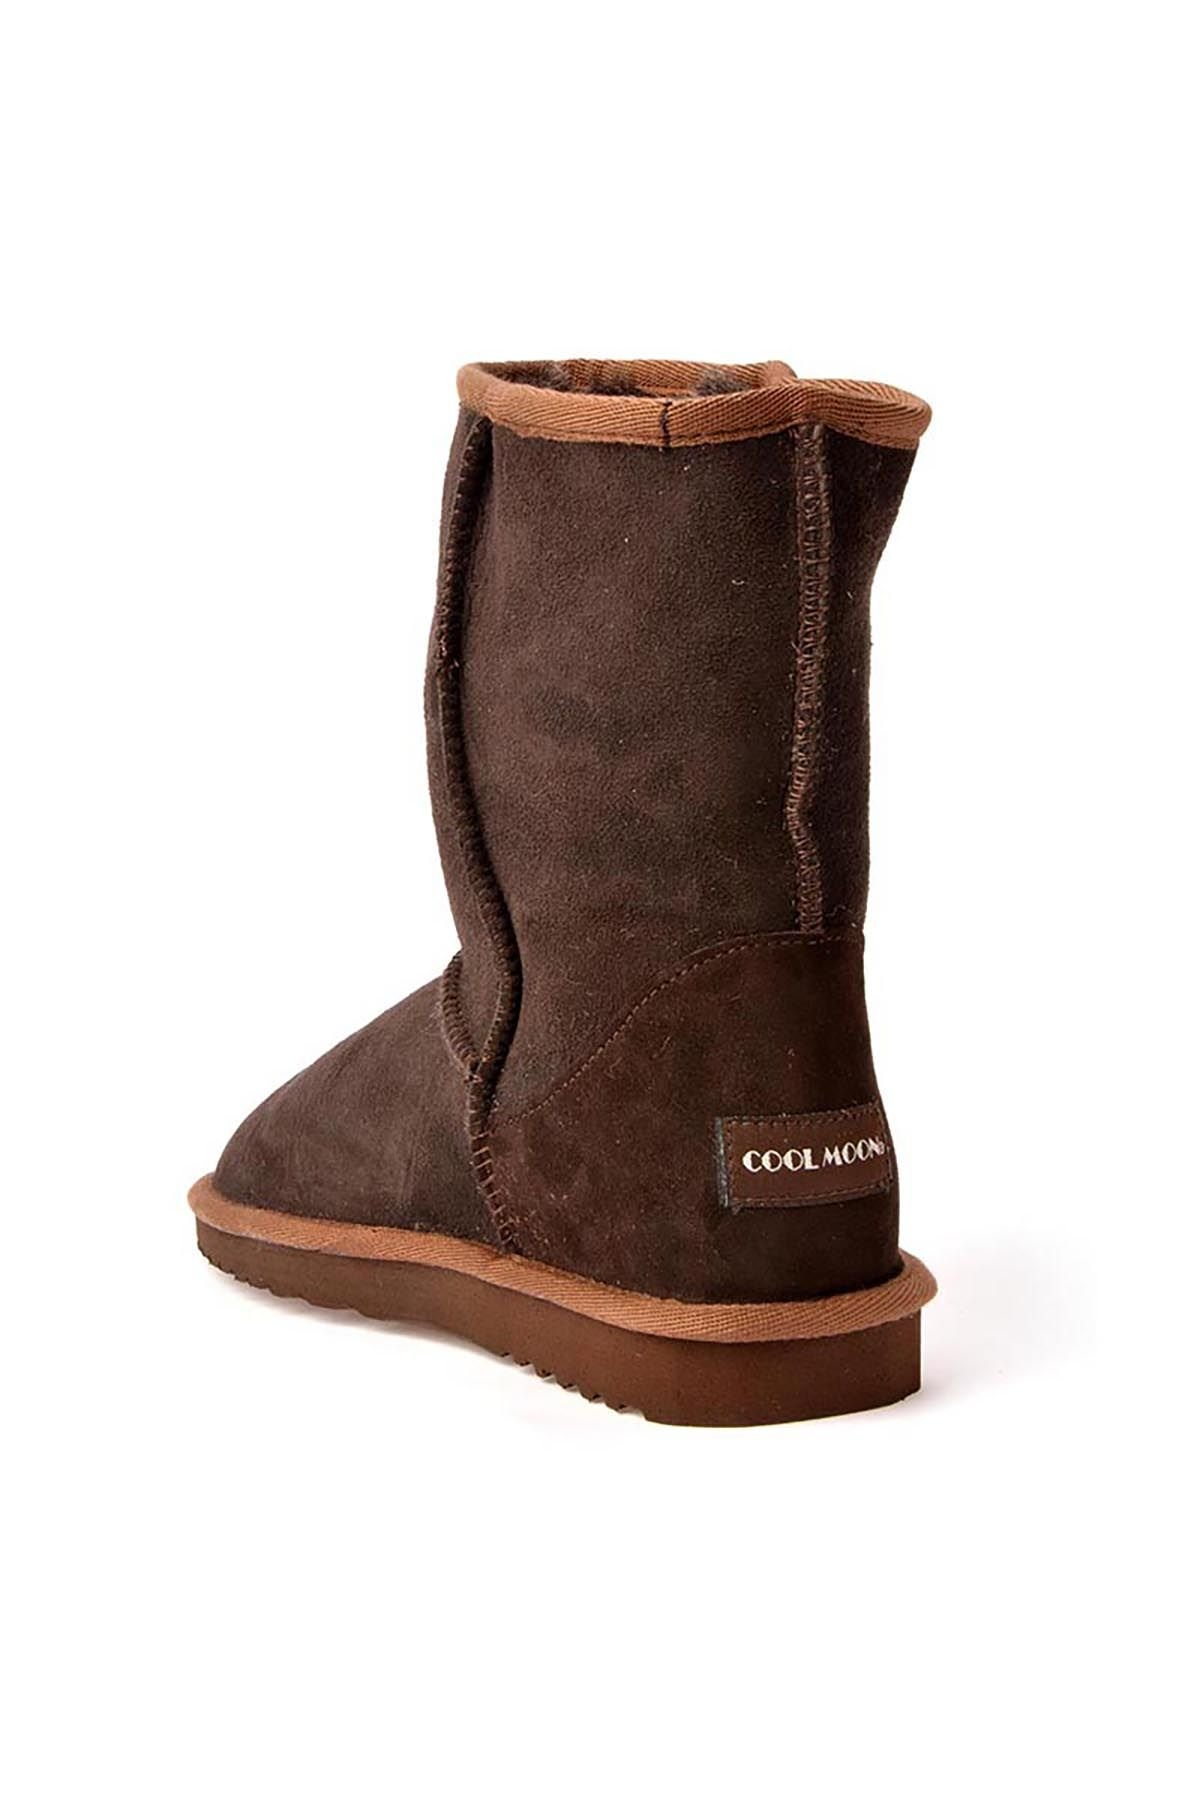 Cool Moon Classic Women Boots From Genuine Suede Brown